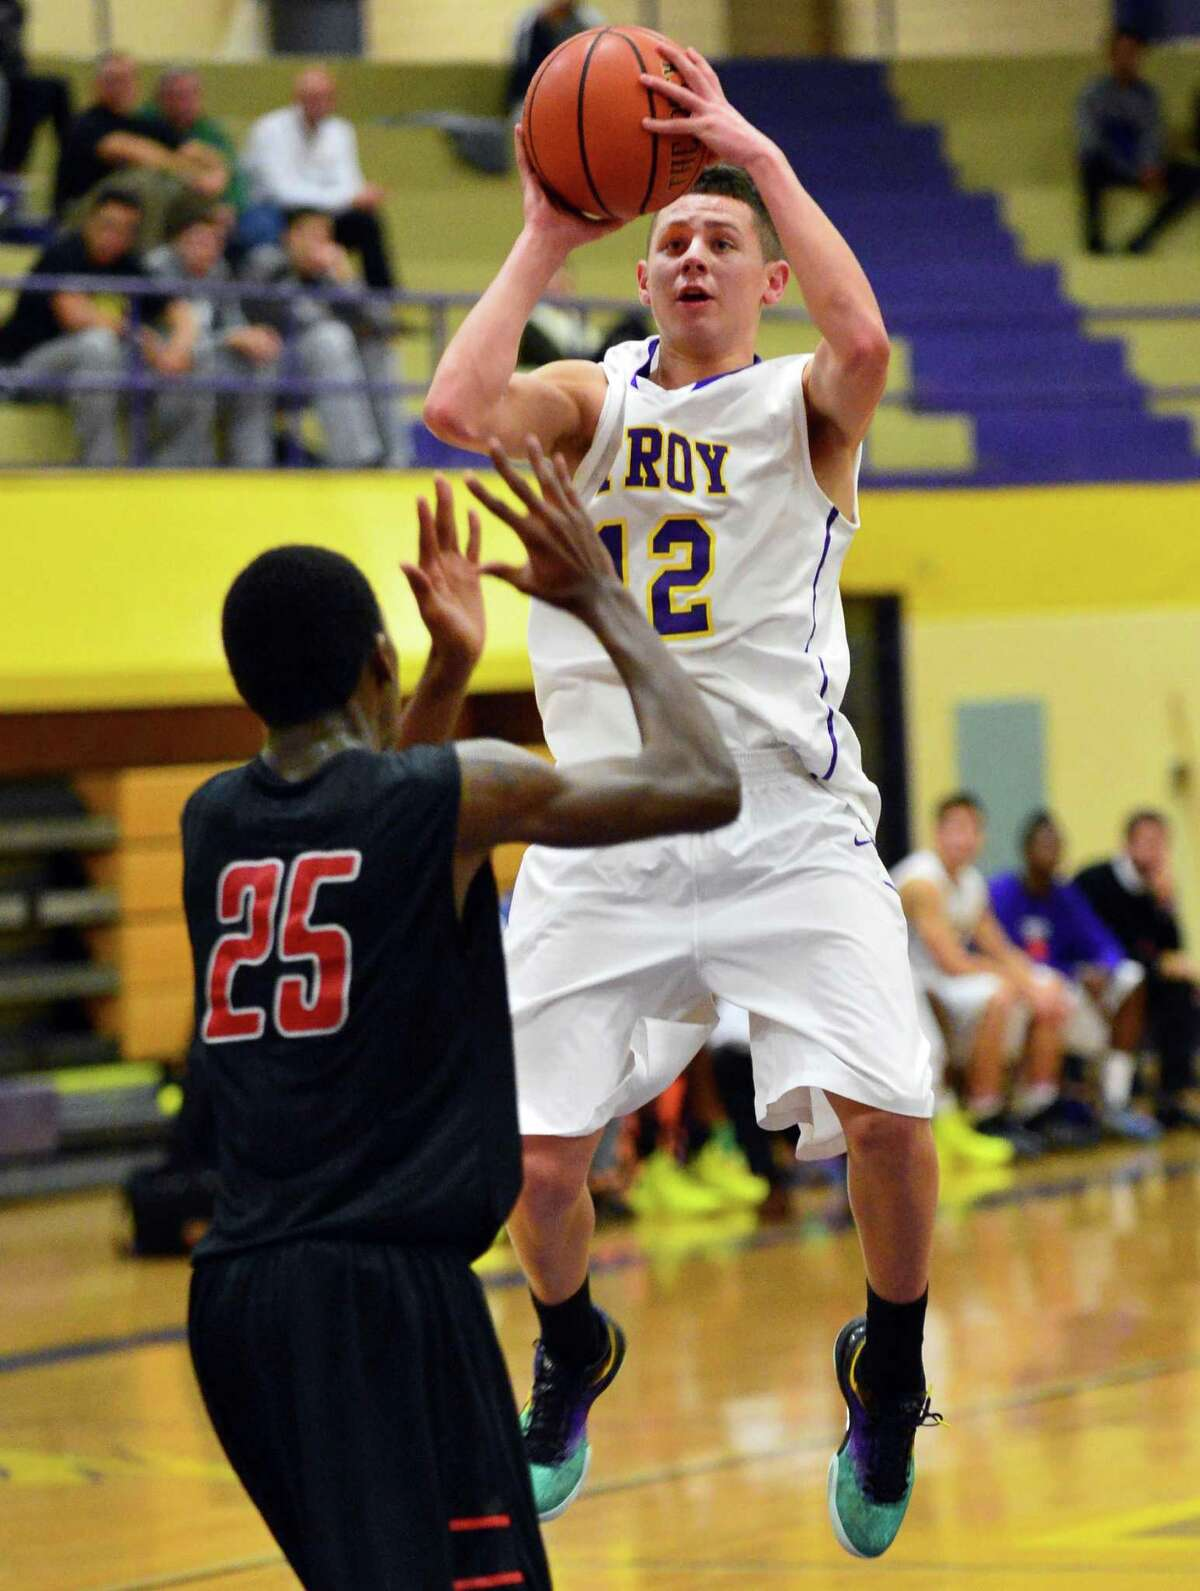 Troy's #12 Zach Radz, at right, shoots past Proctor defender Daquan Testamard during Saturday's game at Troy High Dec. 21, 2013, in Troy, NY. (John Carl D'Annibale / Times Union)